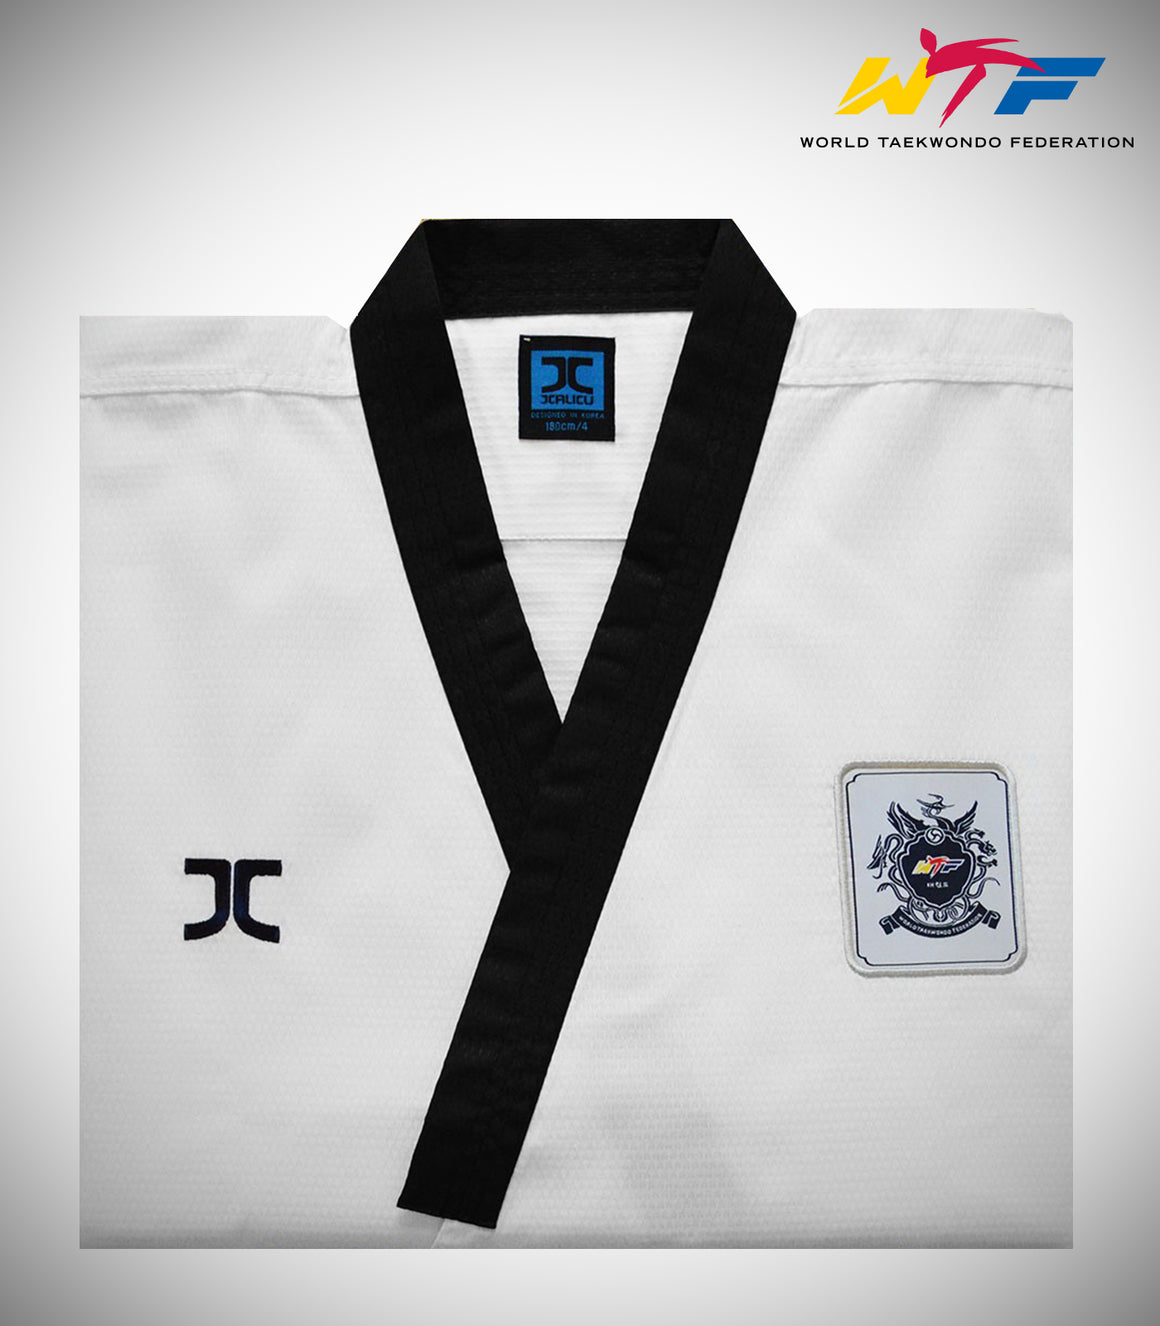 JC ADULT MALE POOMSAE DIAMOND UNIFORM